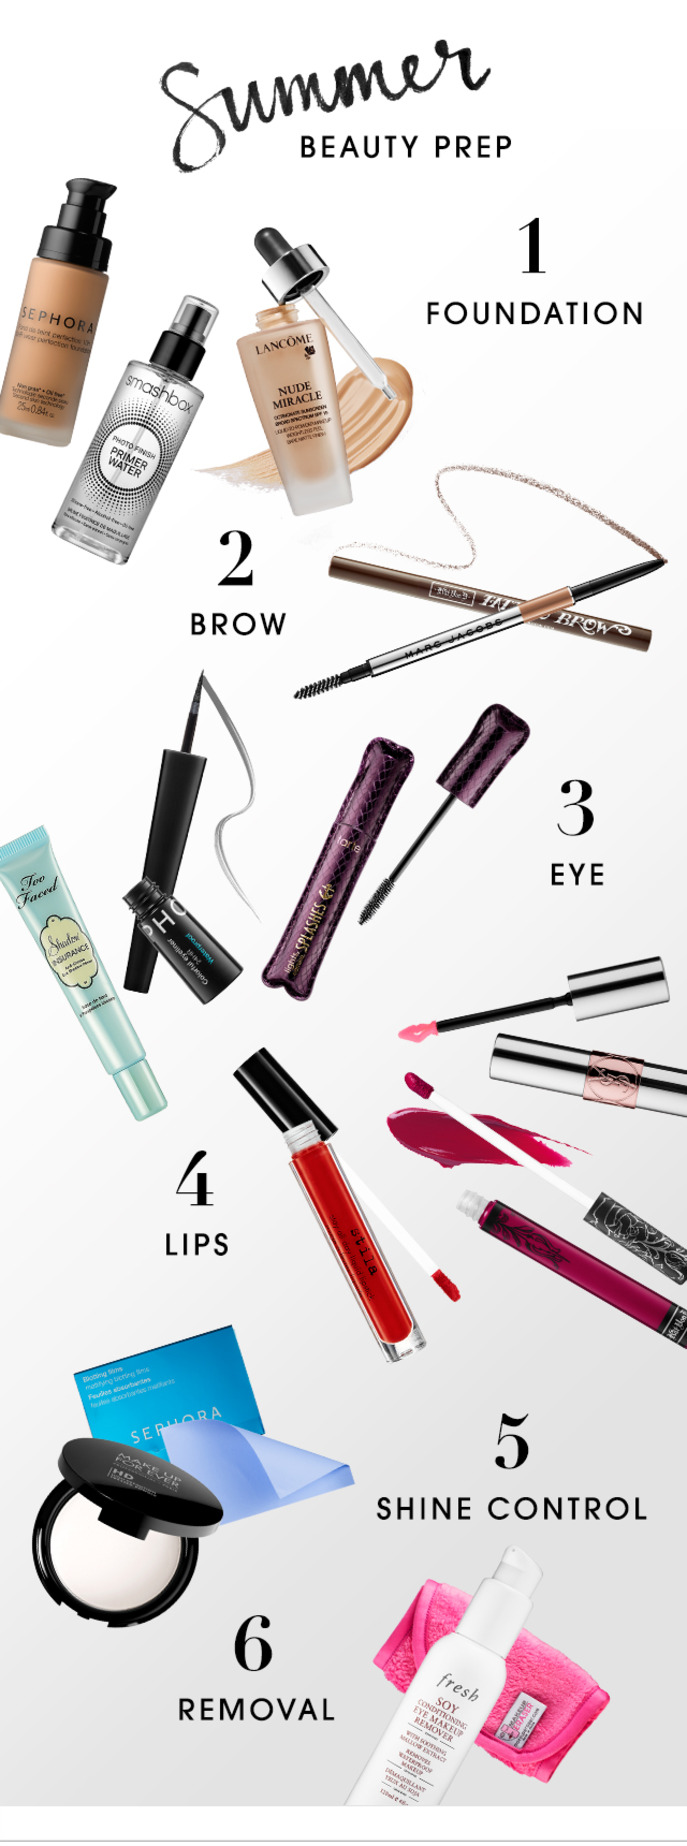 THE TIP-OFF: SUMMER BEAUTY PREP